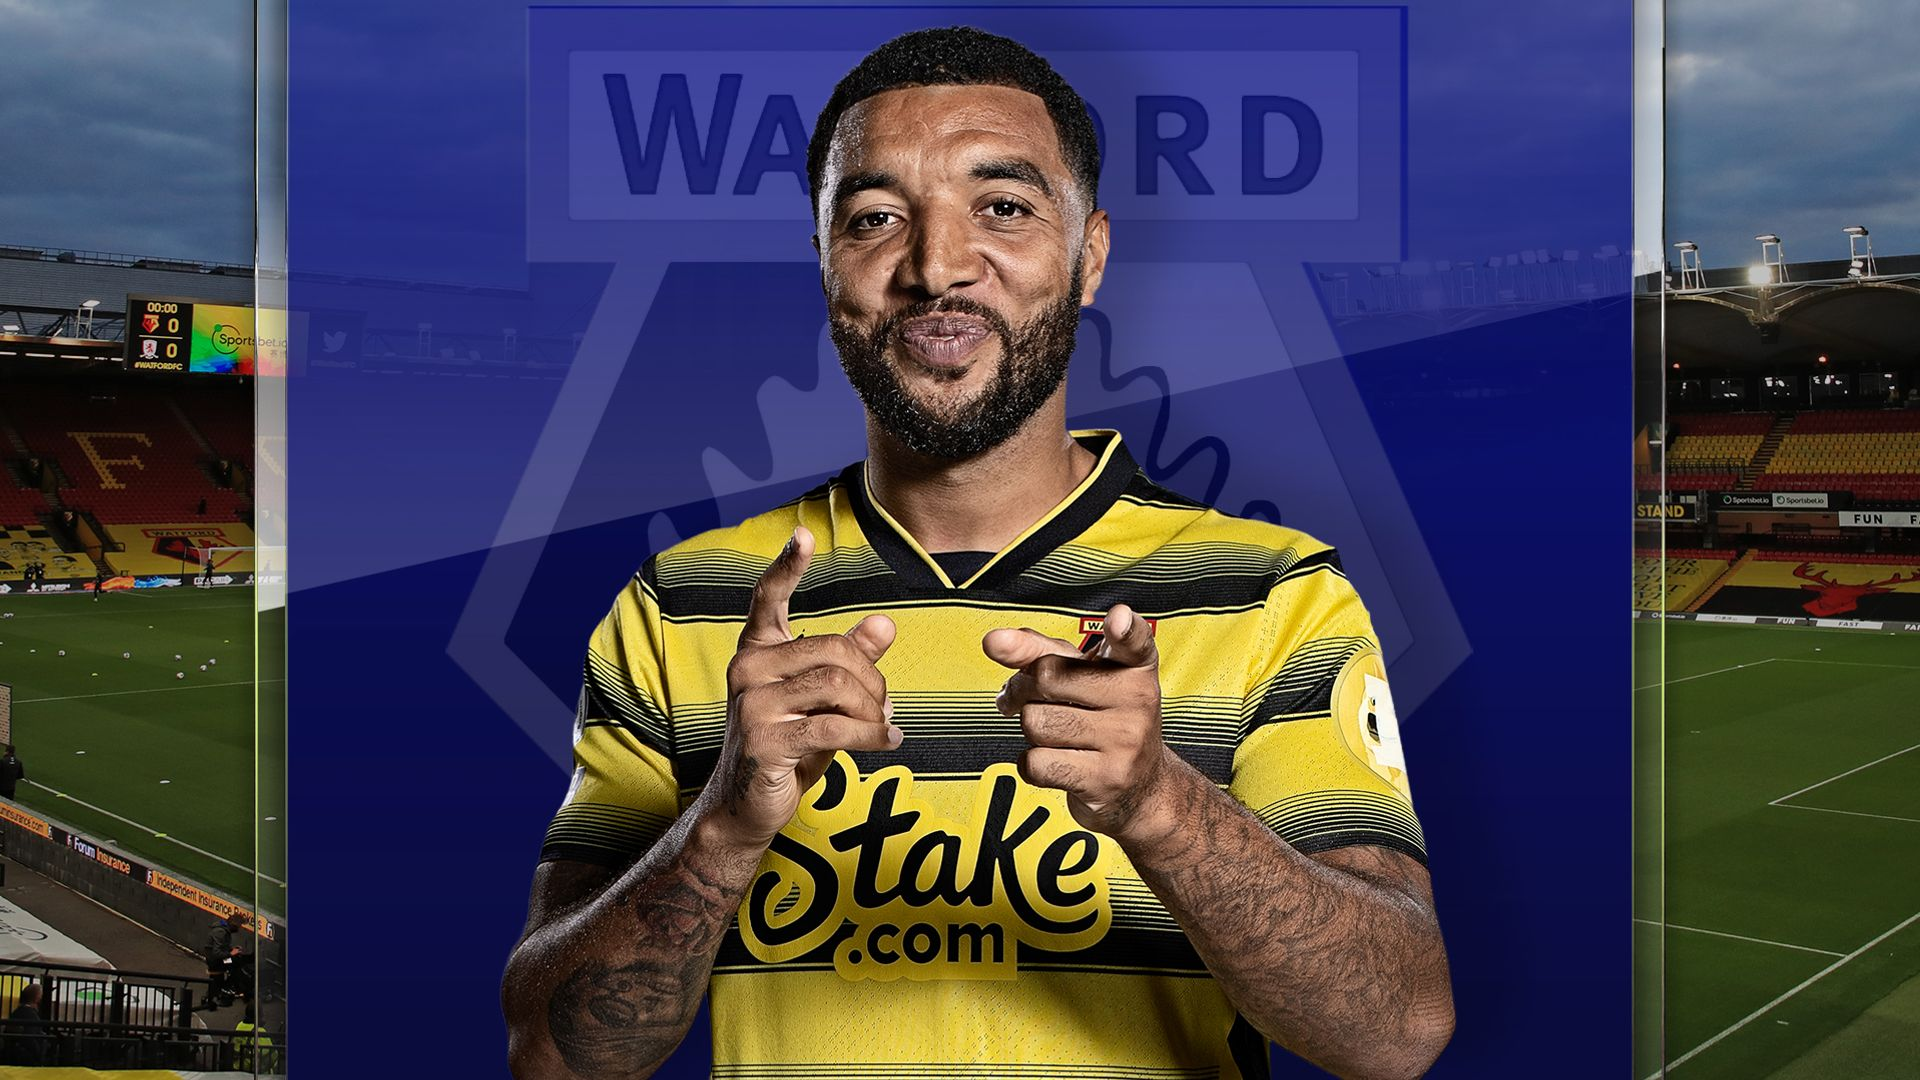 Deeney at 33: I've got nothing to prove